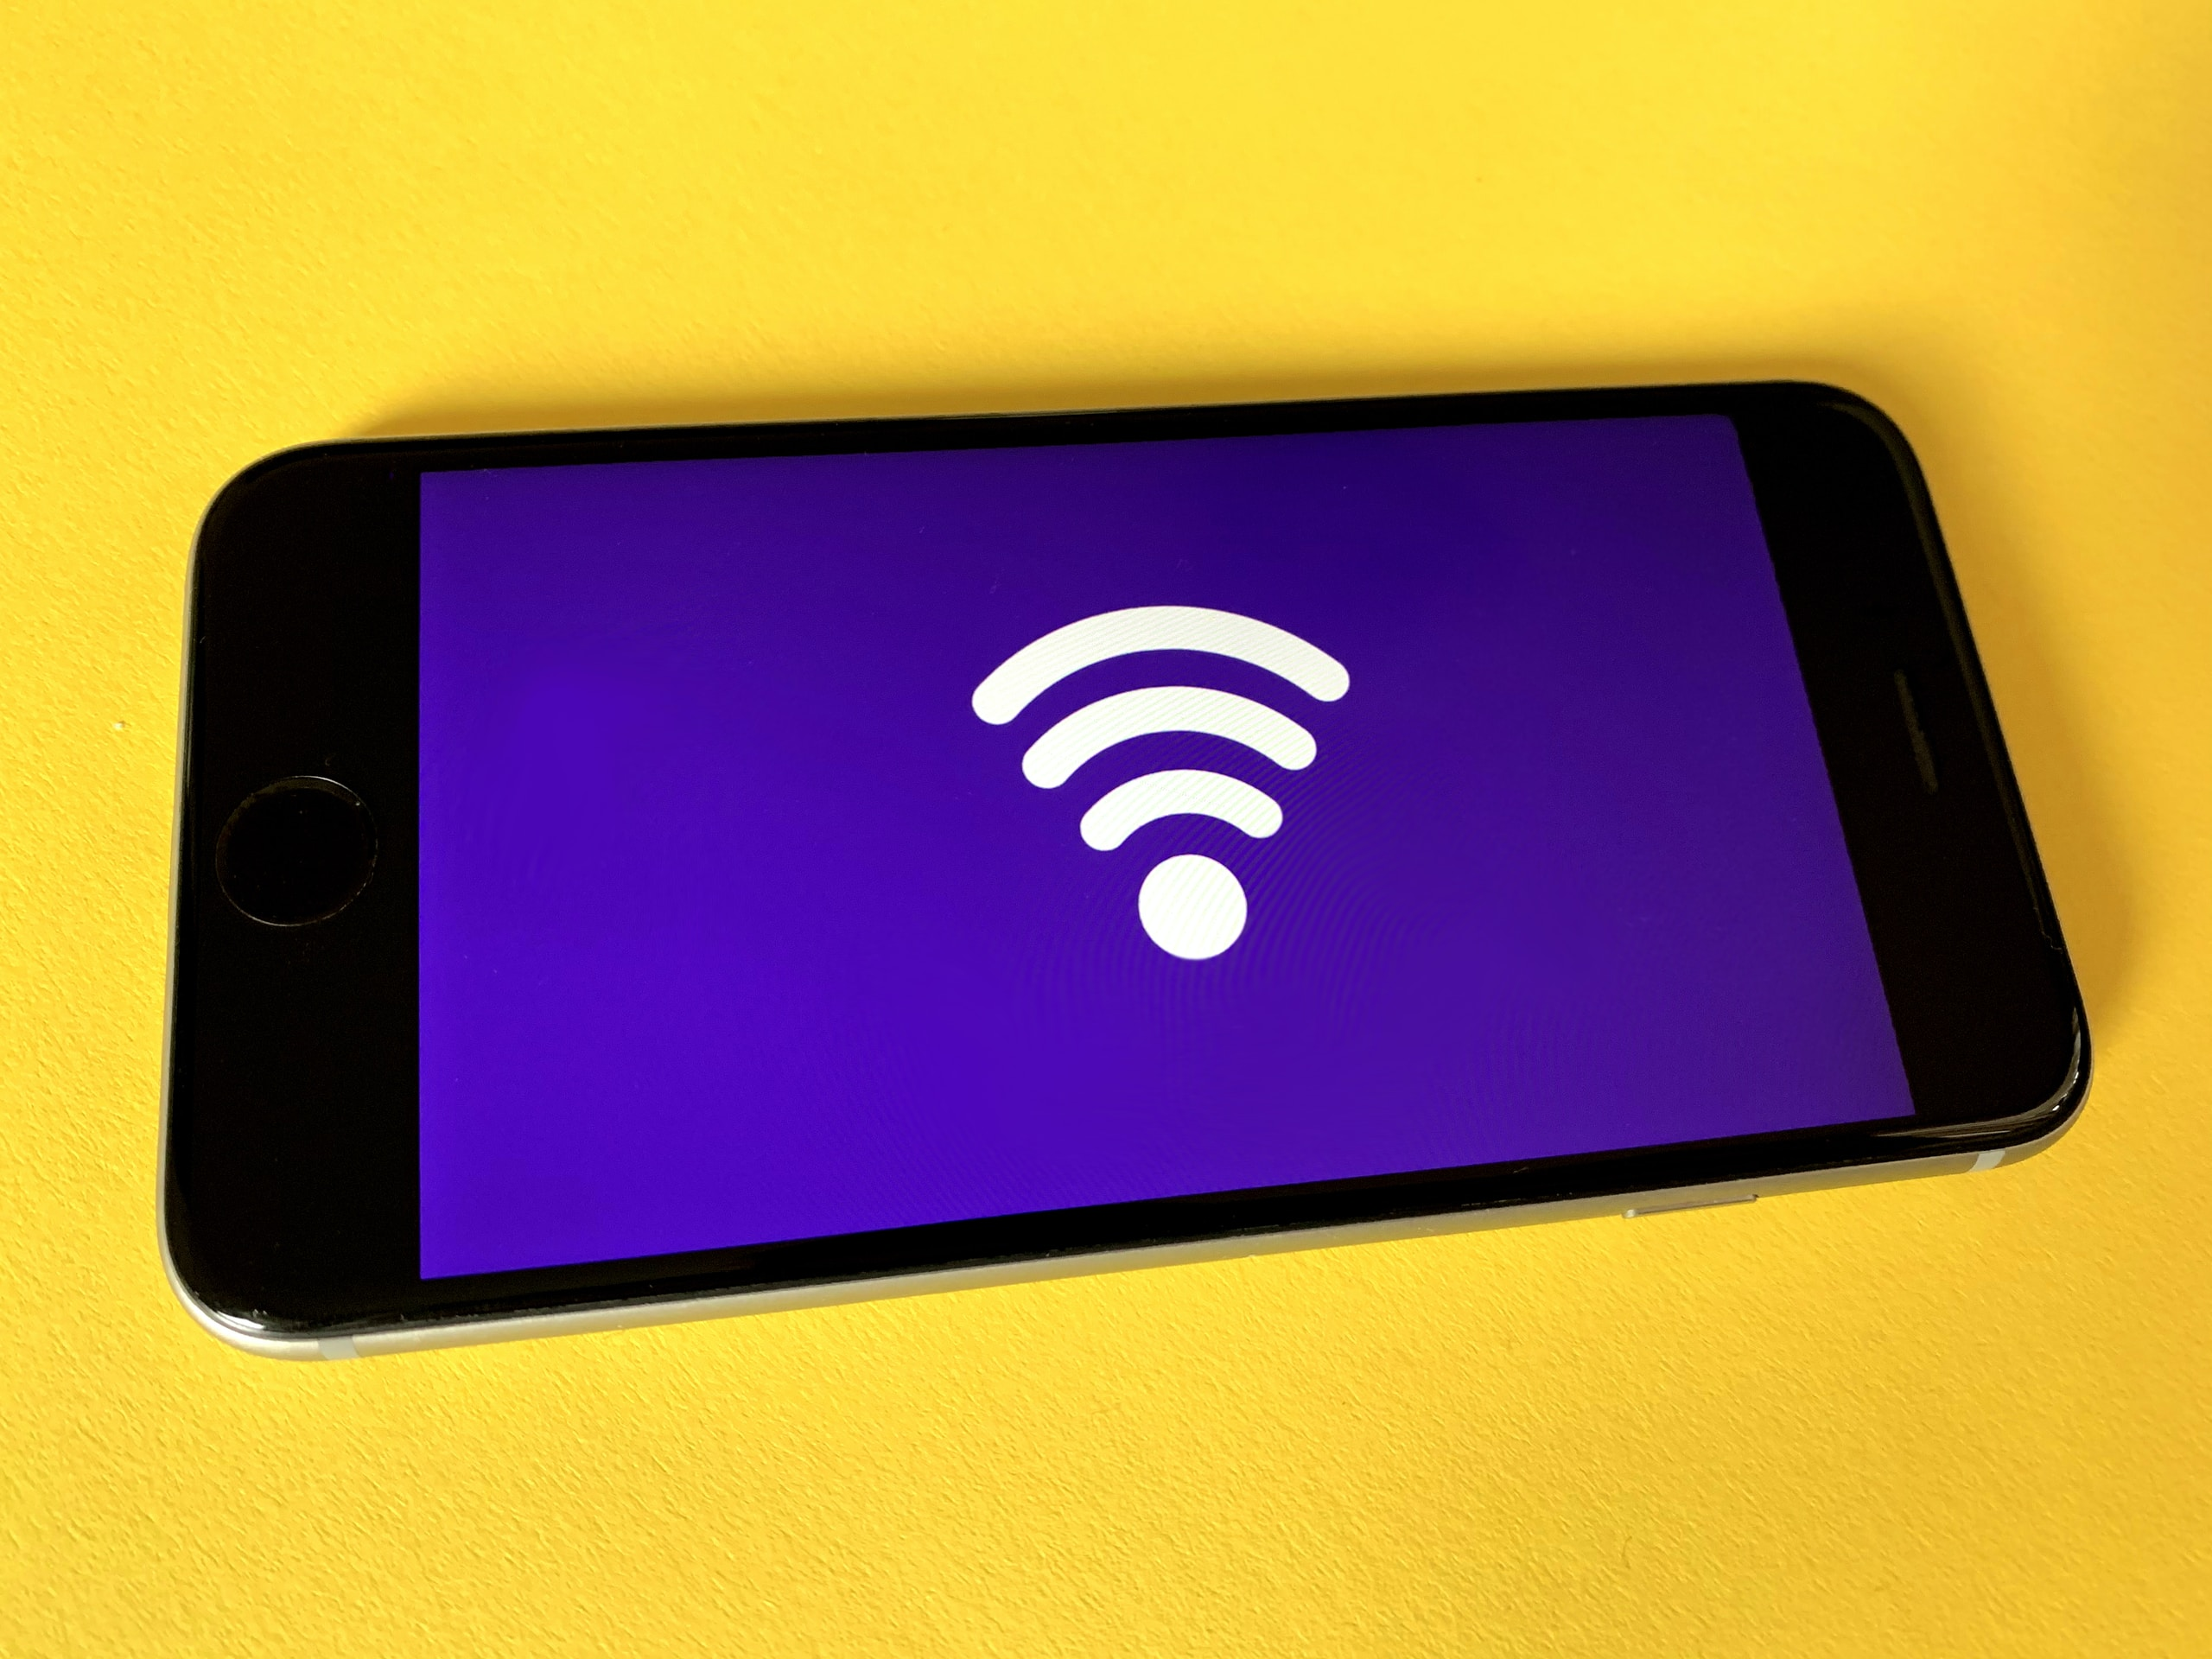 Wifi/Connectivity. Use this image for free. Please link to Free-Hotspot.com. Attribution is appreciated.